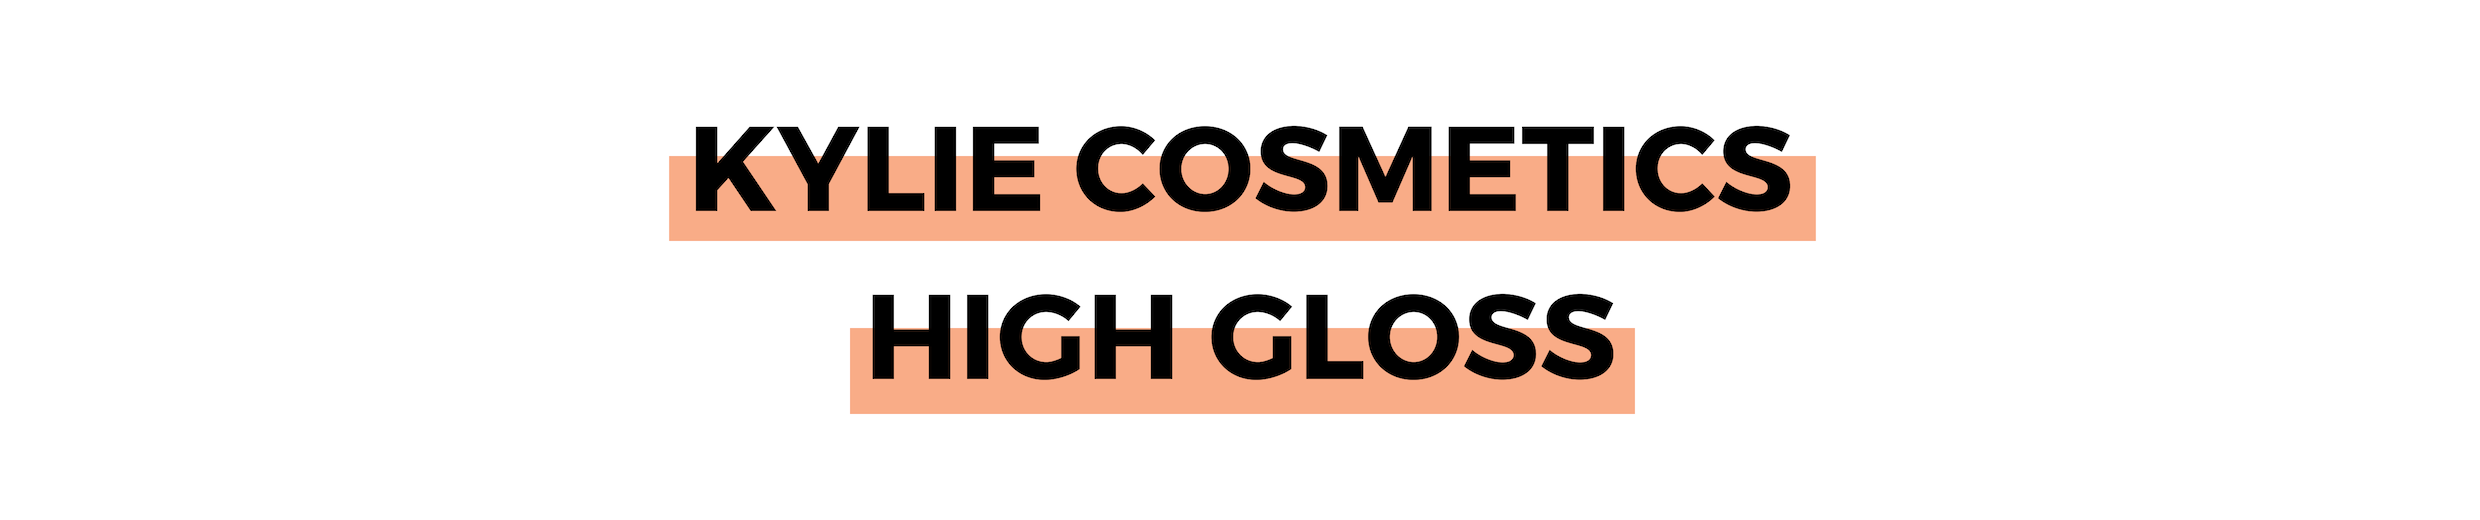 KYLIE COSMETICS HIGH GLOSS.png